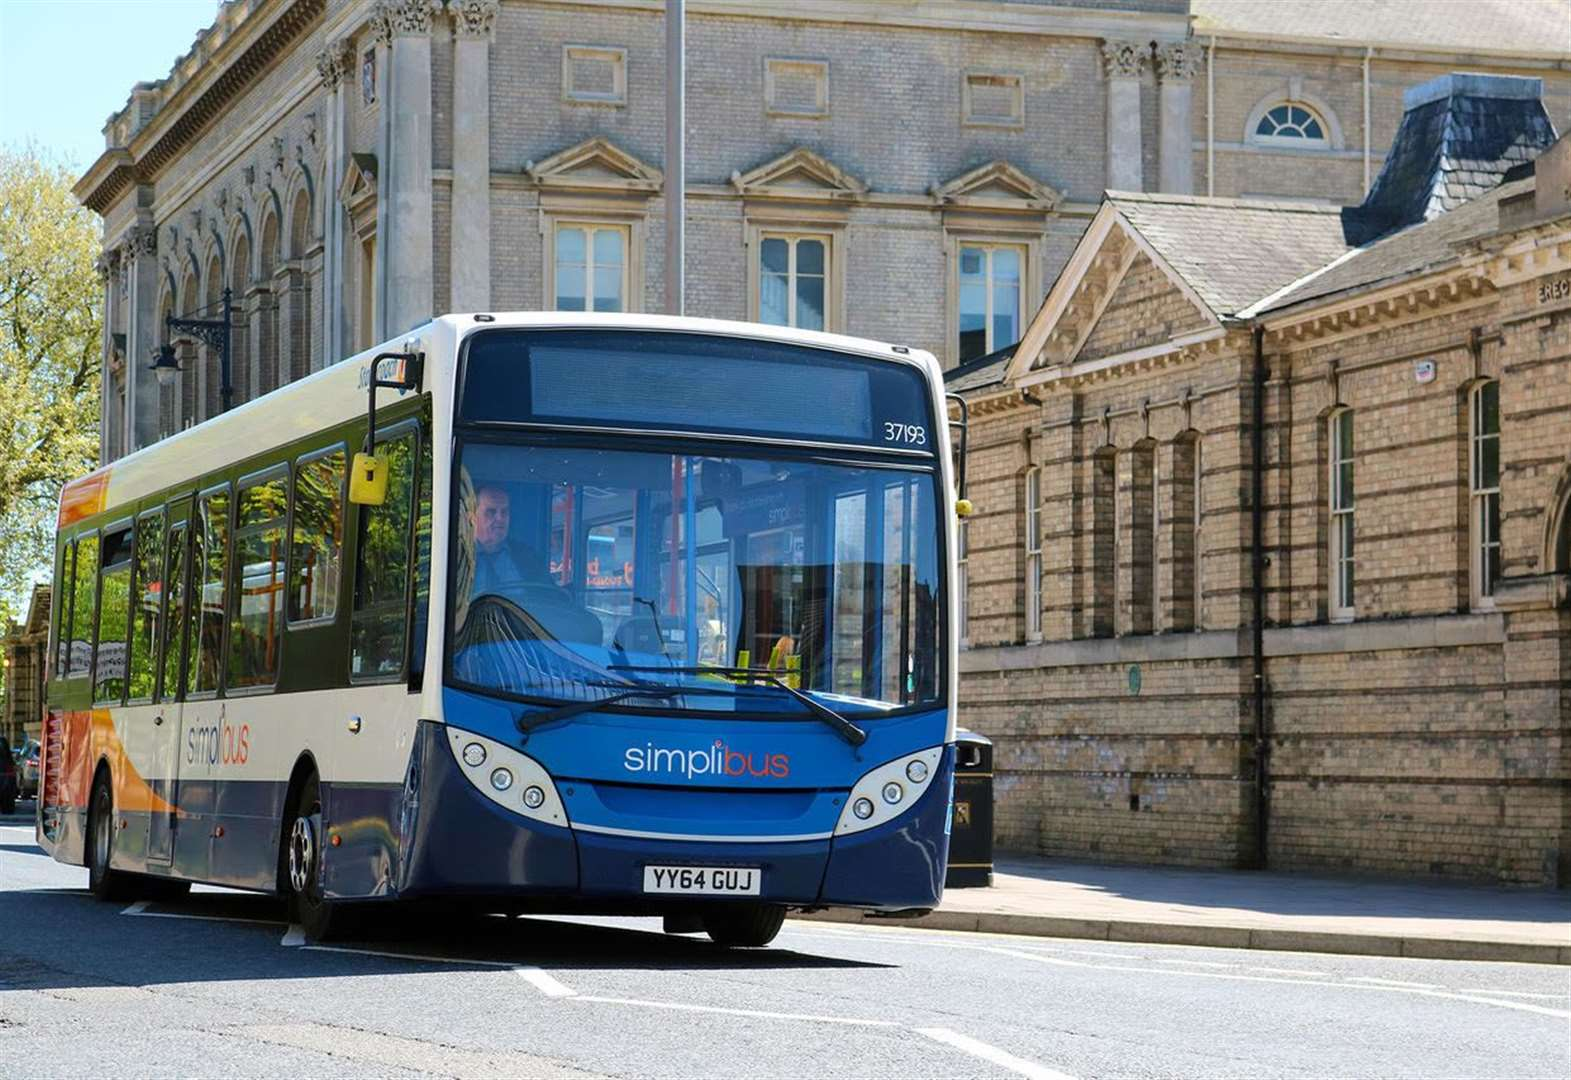 Stagecoach offers free bus travel to servicemen and women past and present